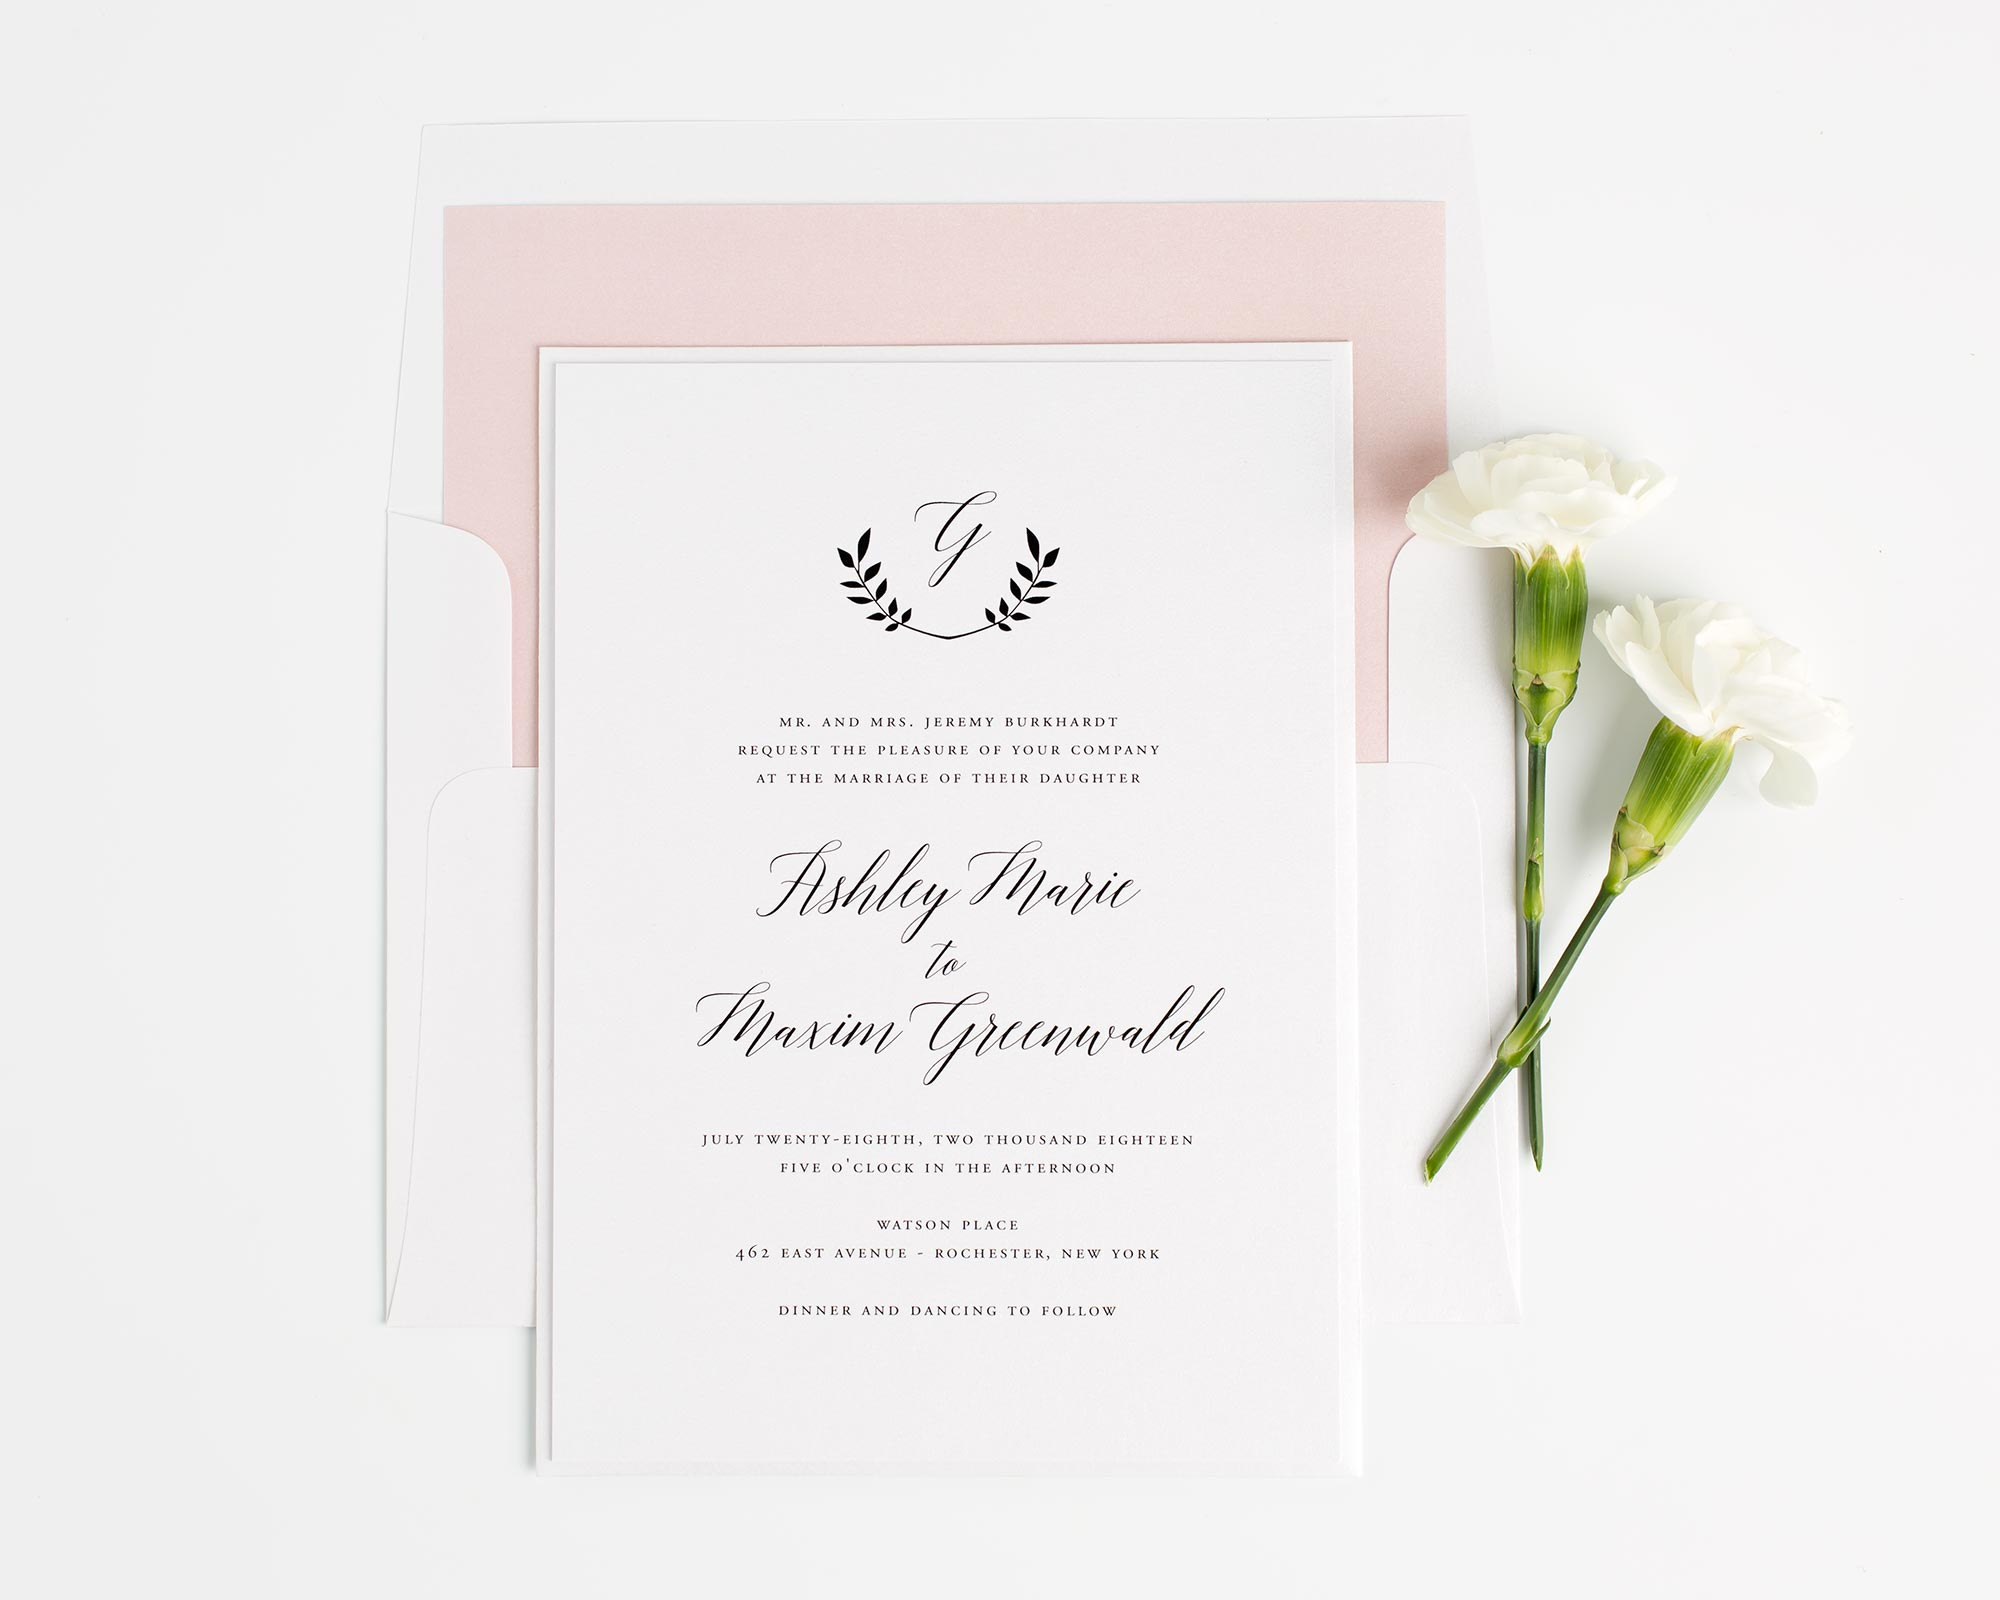 Blush Pink Monogram Wedding Invitations